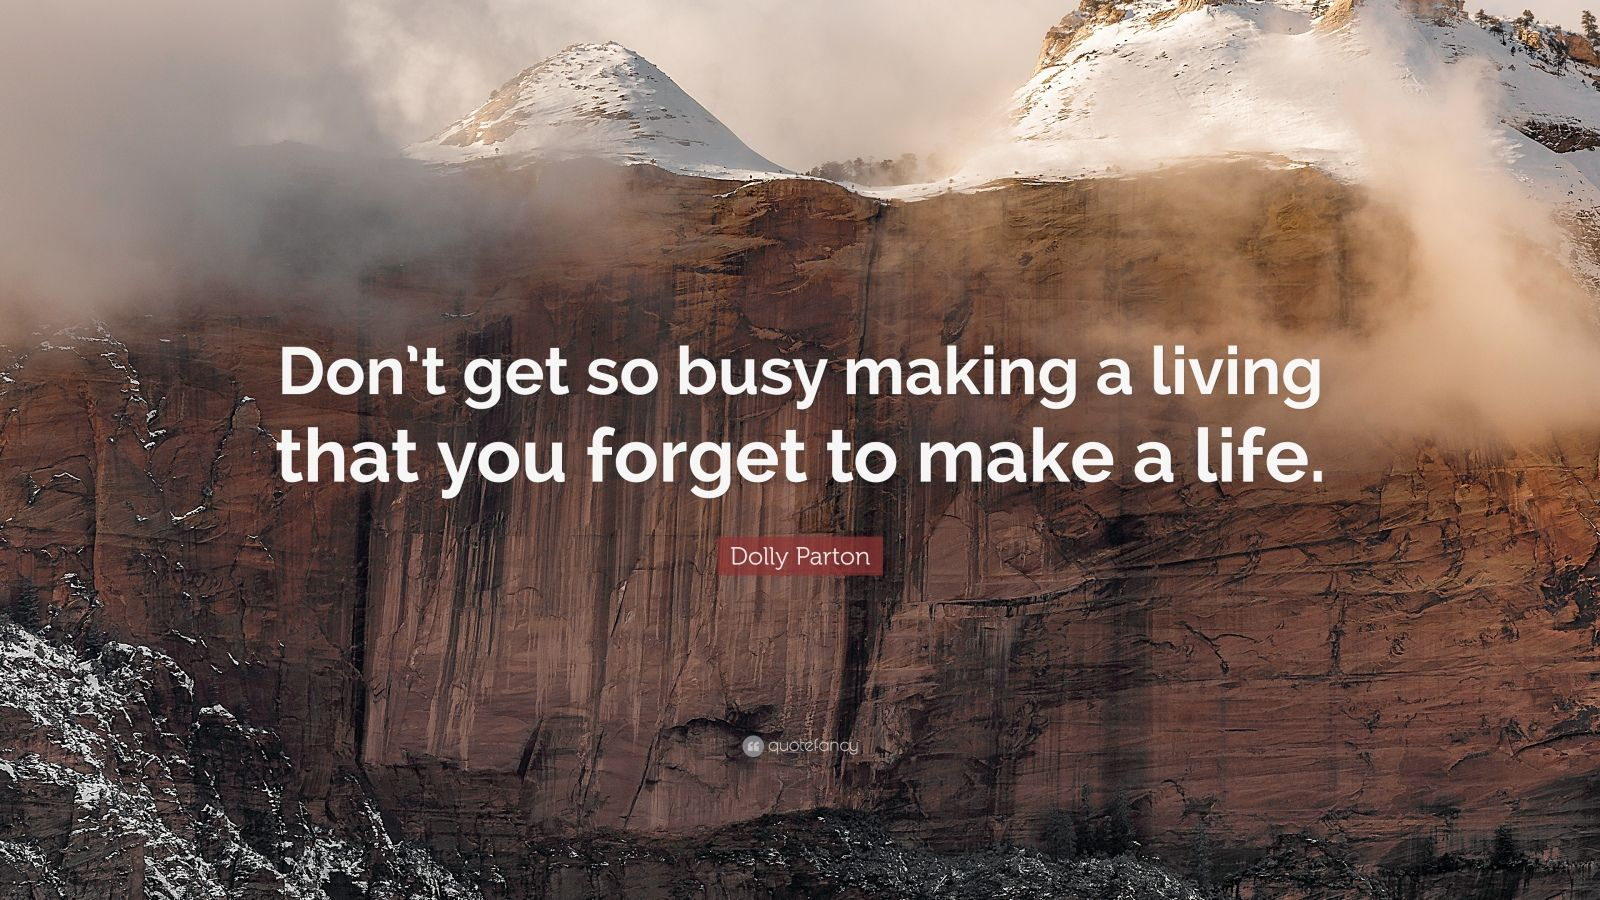 Busy Wallpaper With Quotes Dolly Parton Quote Don T Get So Busy Making A Living